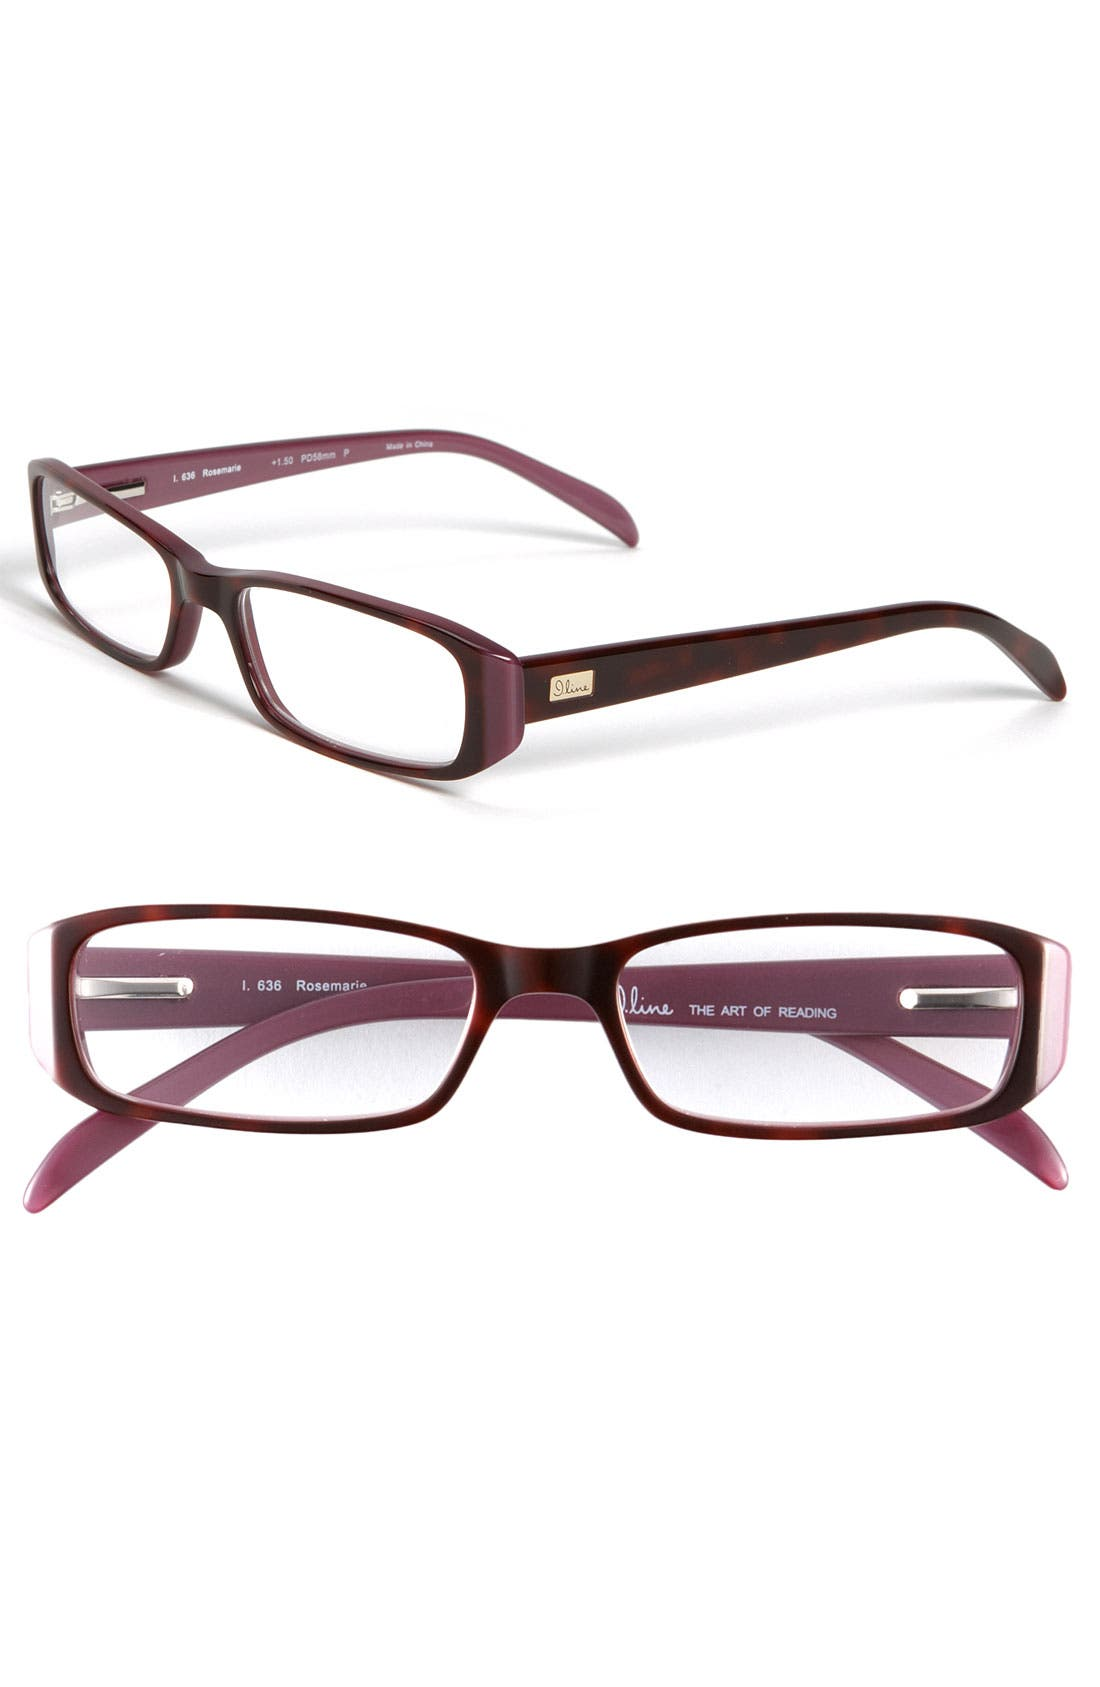 Main Image - I Line Eyewear 'Rosemarie' Reading Glasses